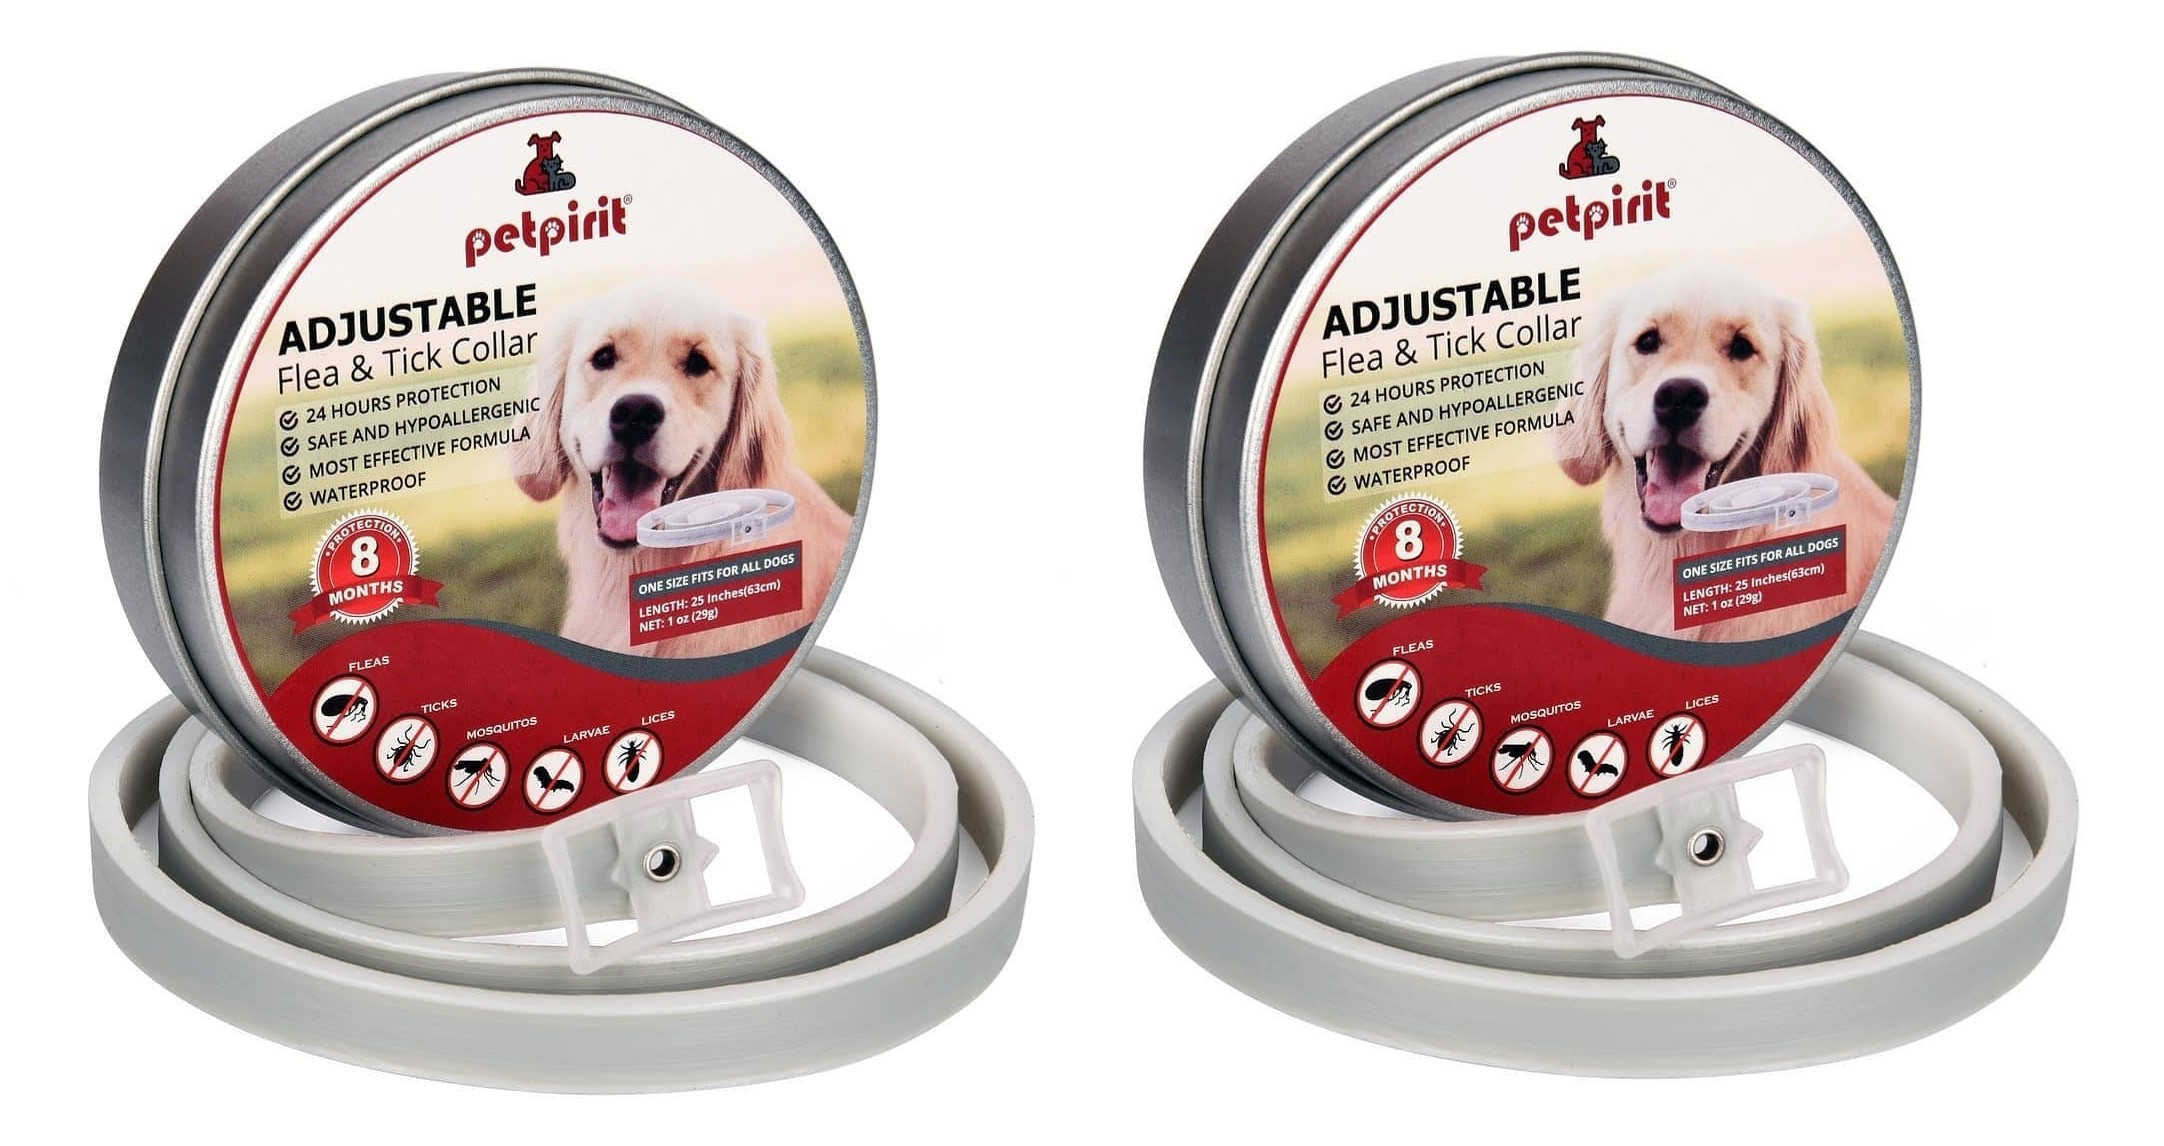 8 Month Flea and Tick Treatment and Prevention for Cats Cat Flea and Tick Collar Enhanced with Natural Essential Oils Adjustable /& Waterproof One Size Fits All